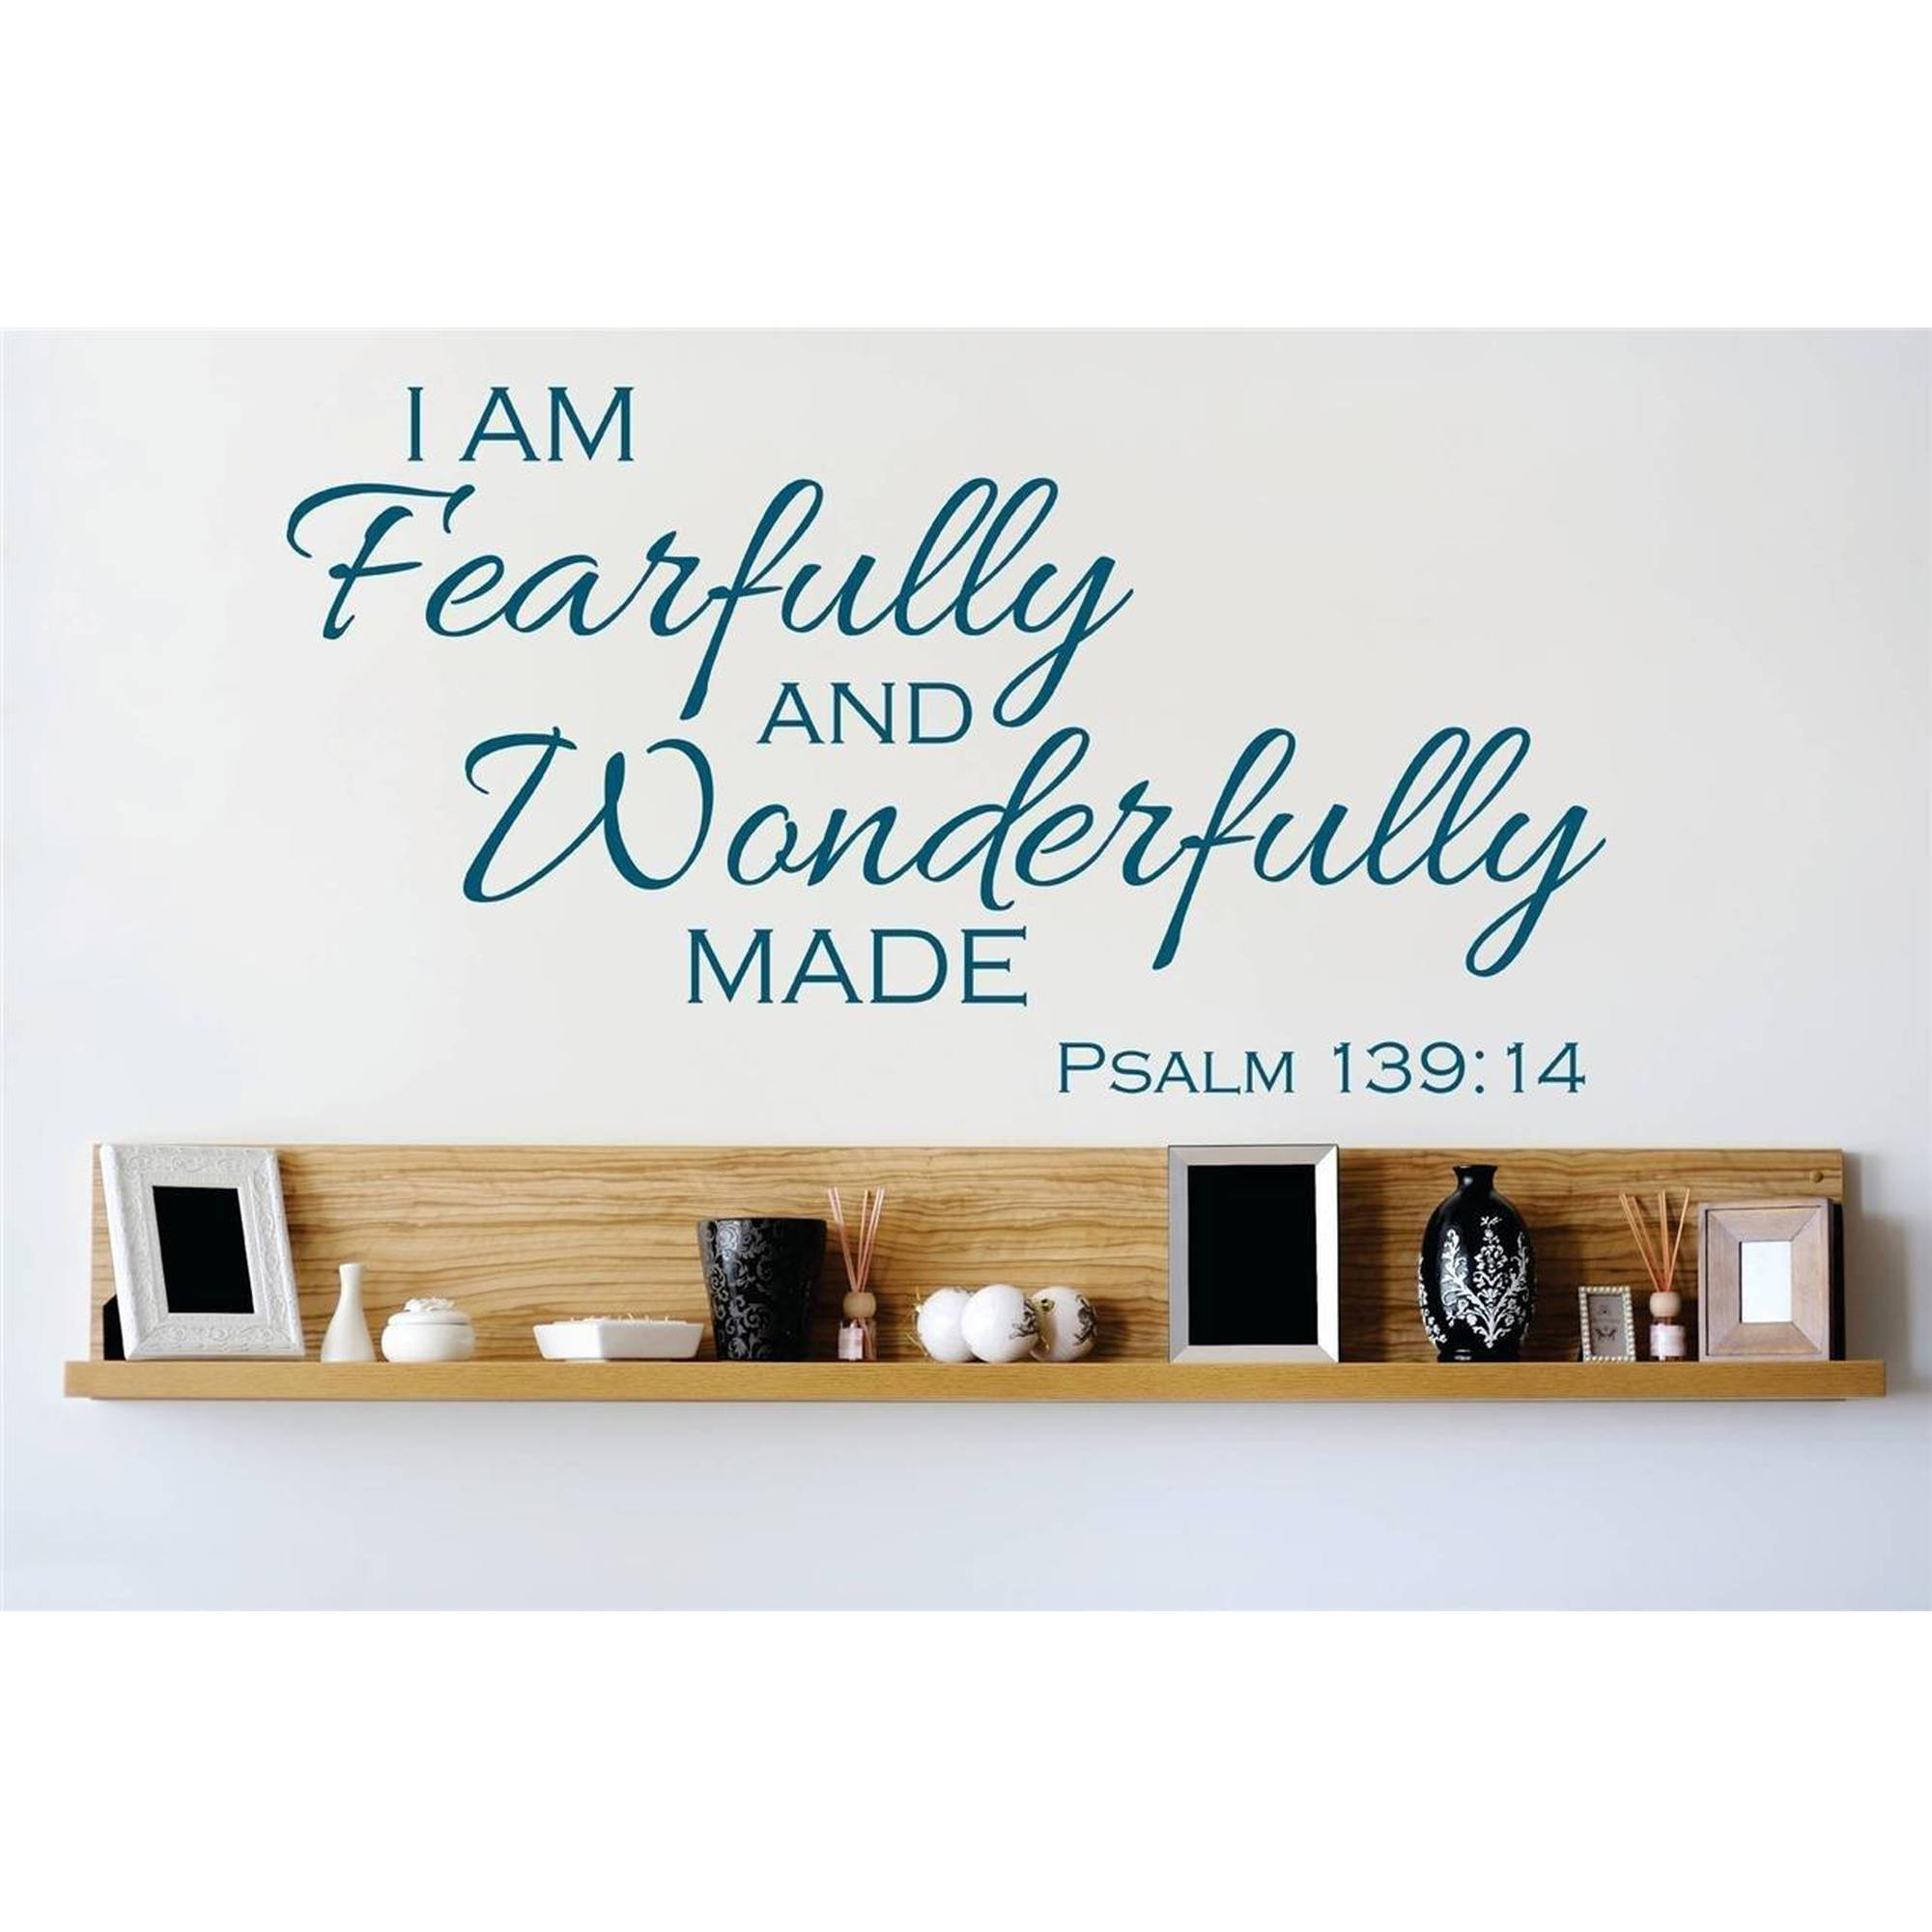 "I Am Fearfully And Wonderfully Made Psalm 139:14 Bible Quote Vinyl Wall Decal, 10"" x 20"", Teal"